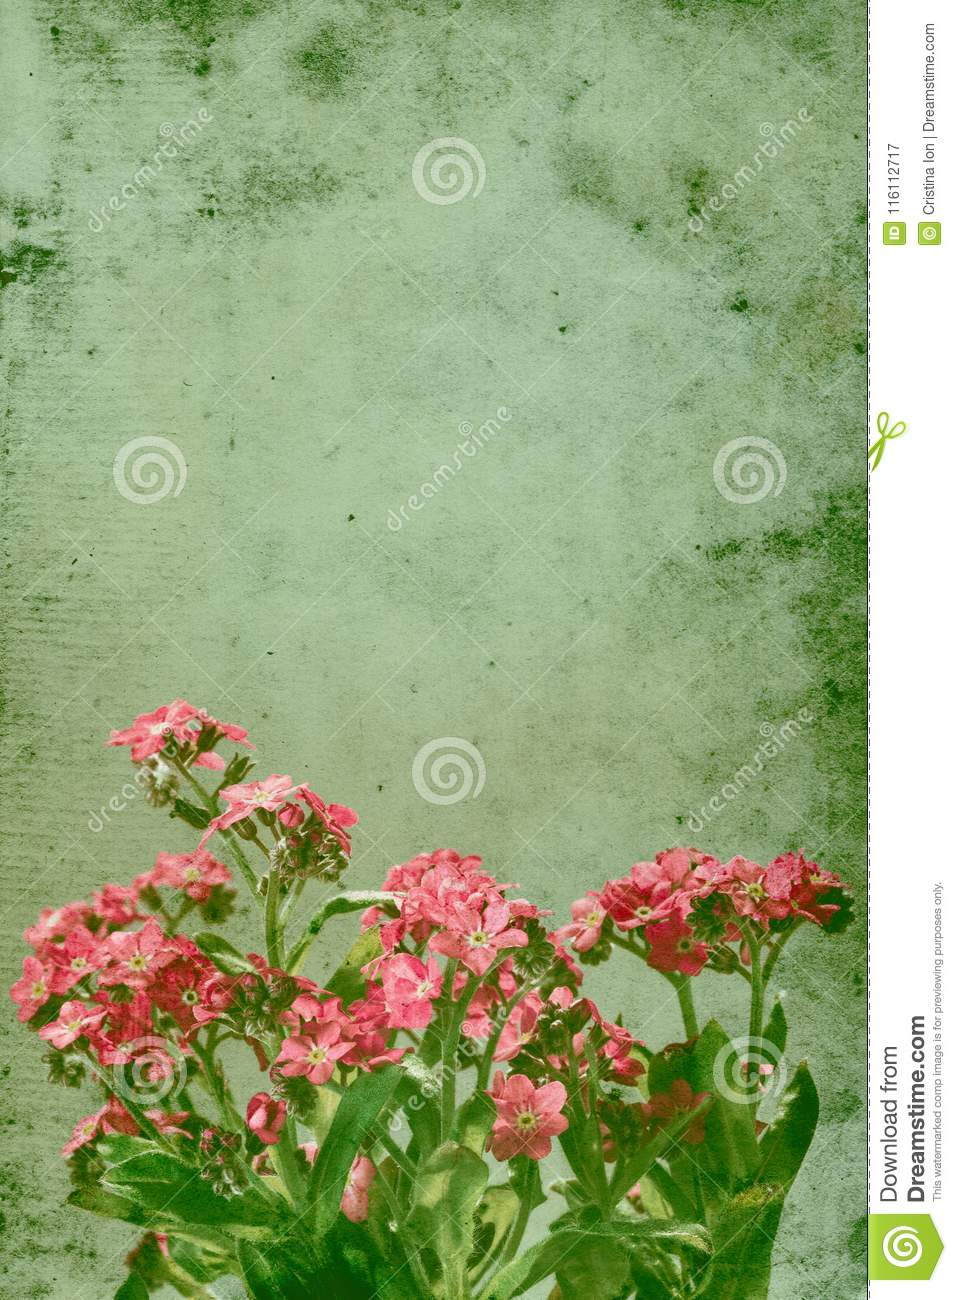 Retro Still Life Image Of Pink Forget Me Not Flowers Stock Image